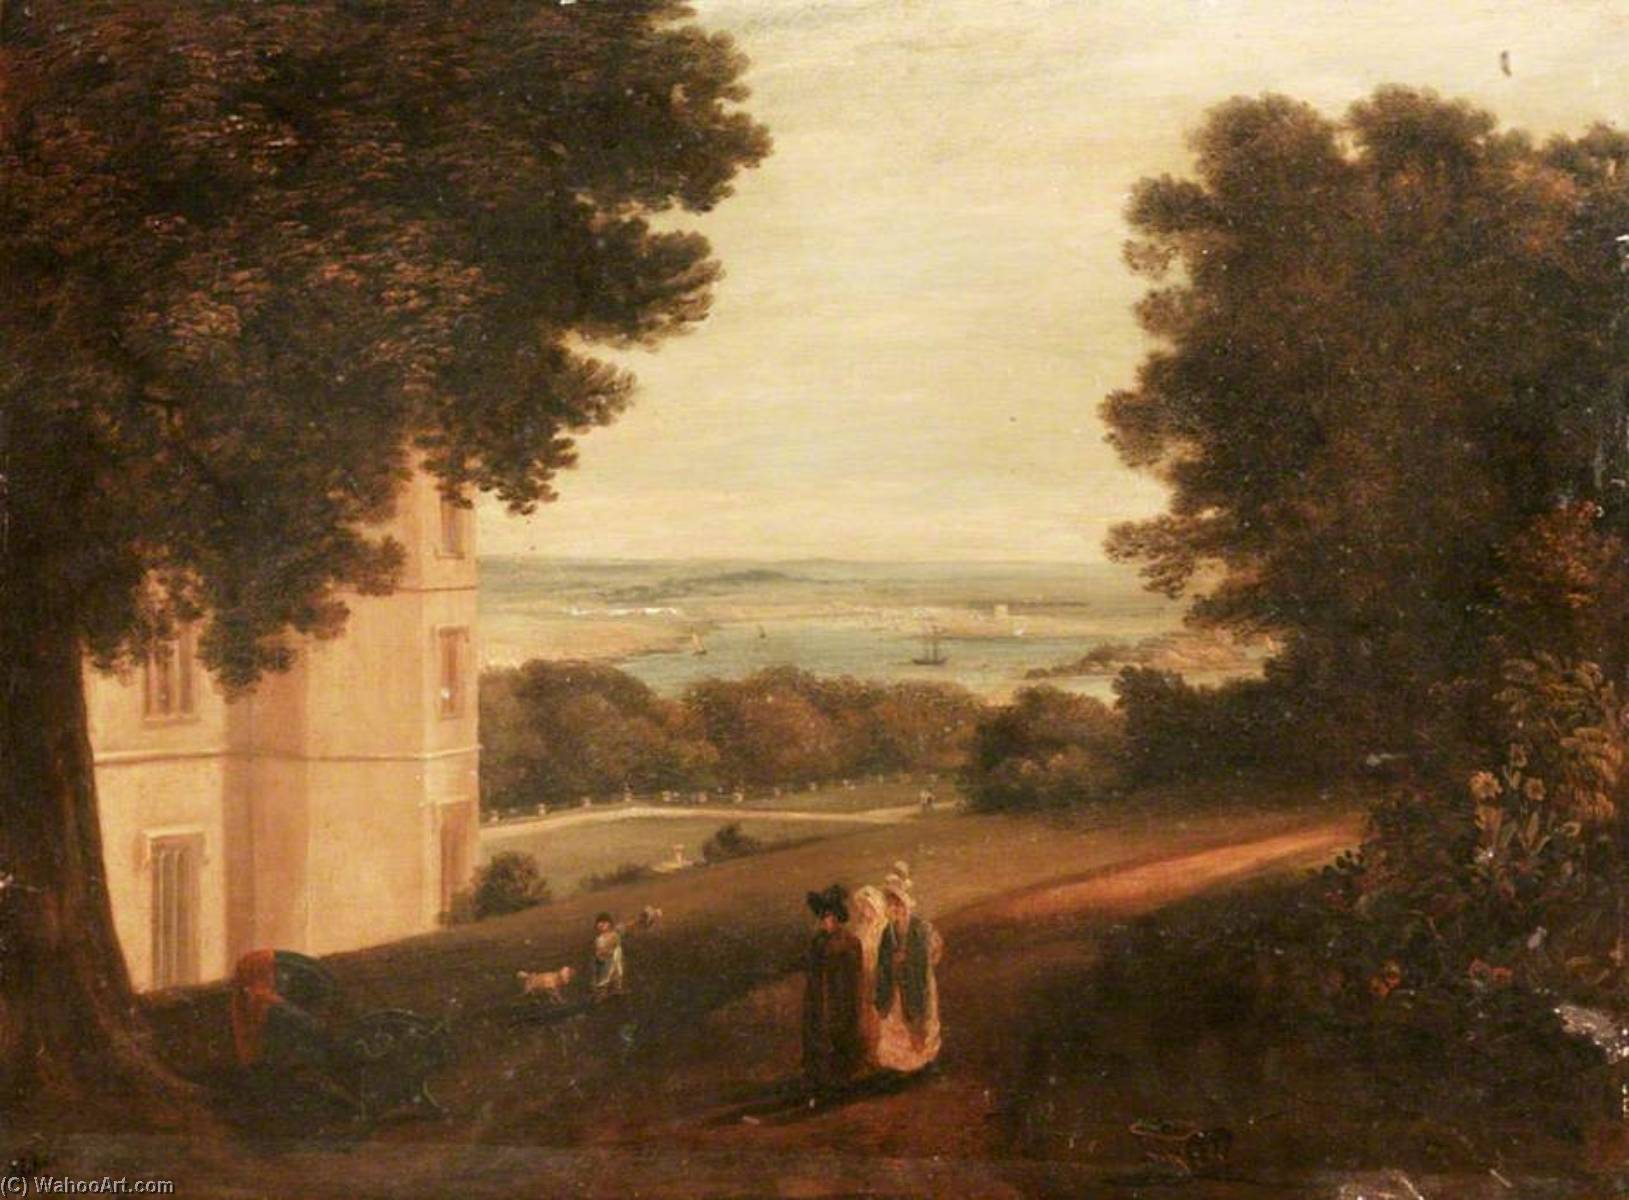 St Nicholas Island from Mount Edgcumbe, 1829 by Ambrose Bowden Johns (1776-1858) | Paintings Reproductions Ambrose Bowden Johns | WahooArt.com